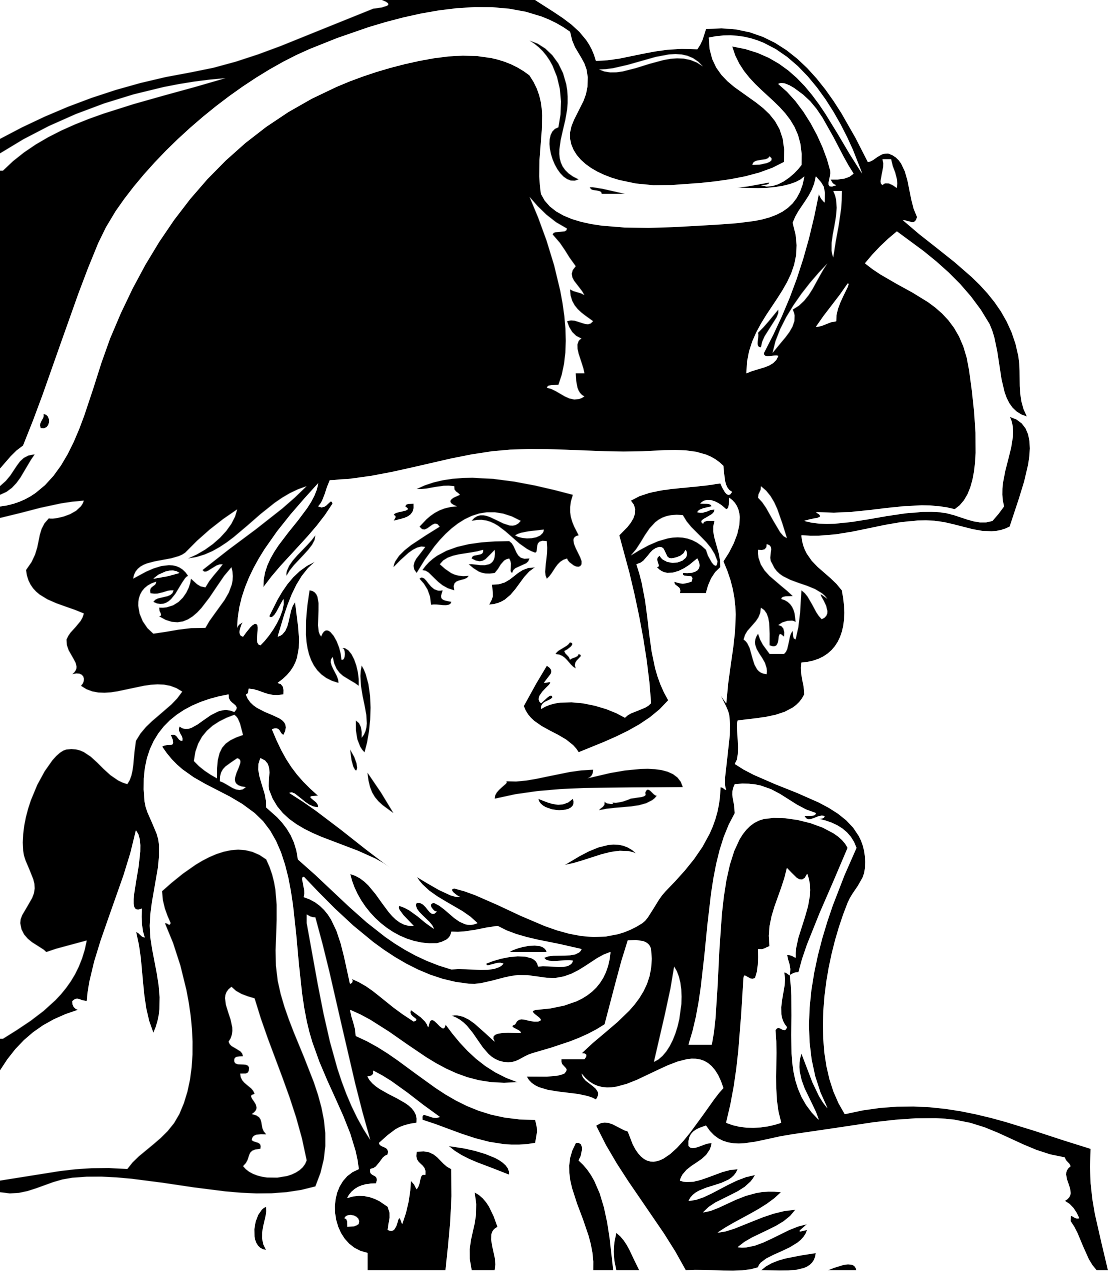 George Washington Art Coloring Book Colouring Sheet Page Black White